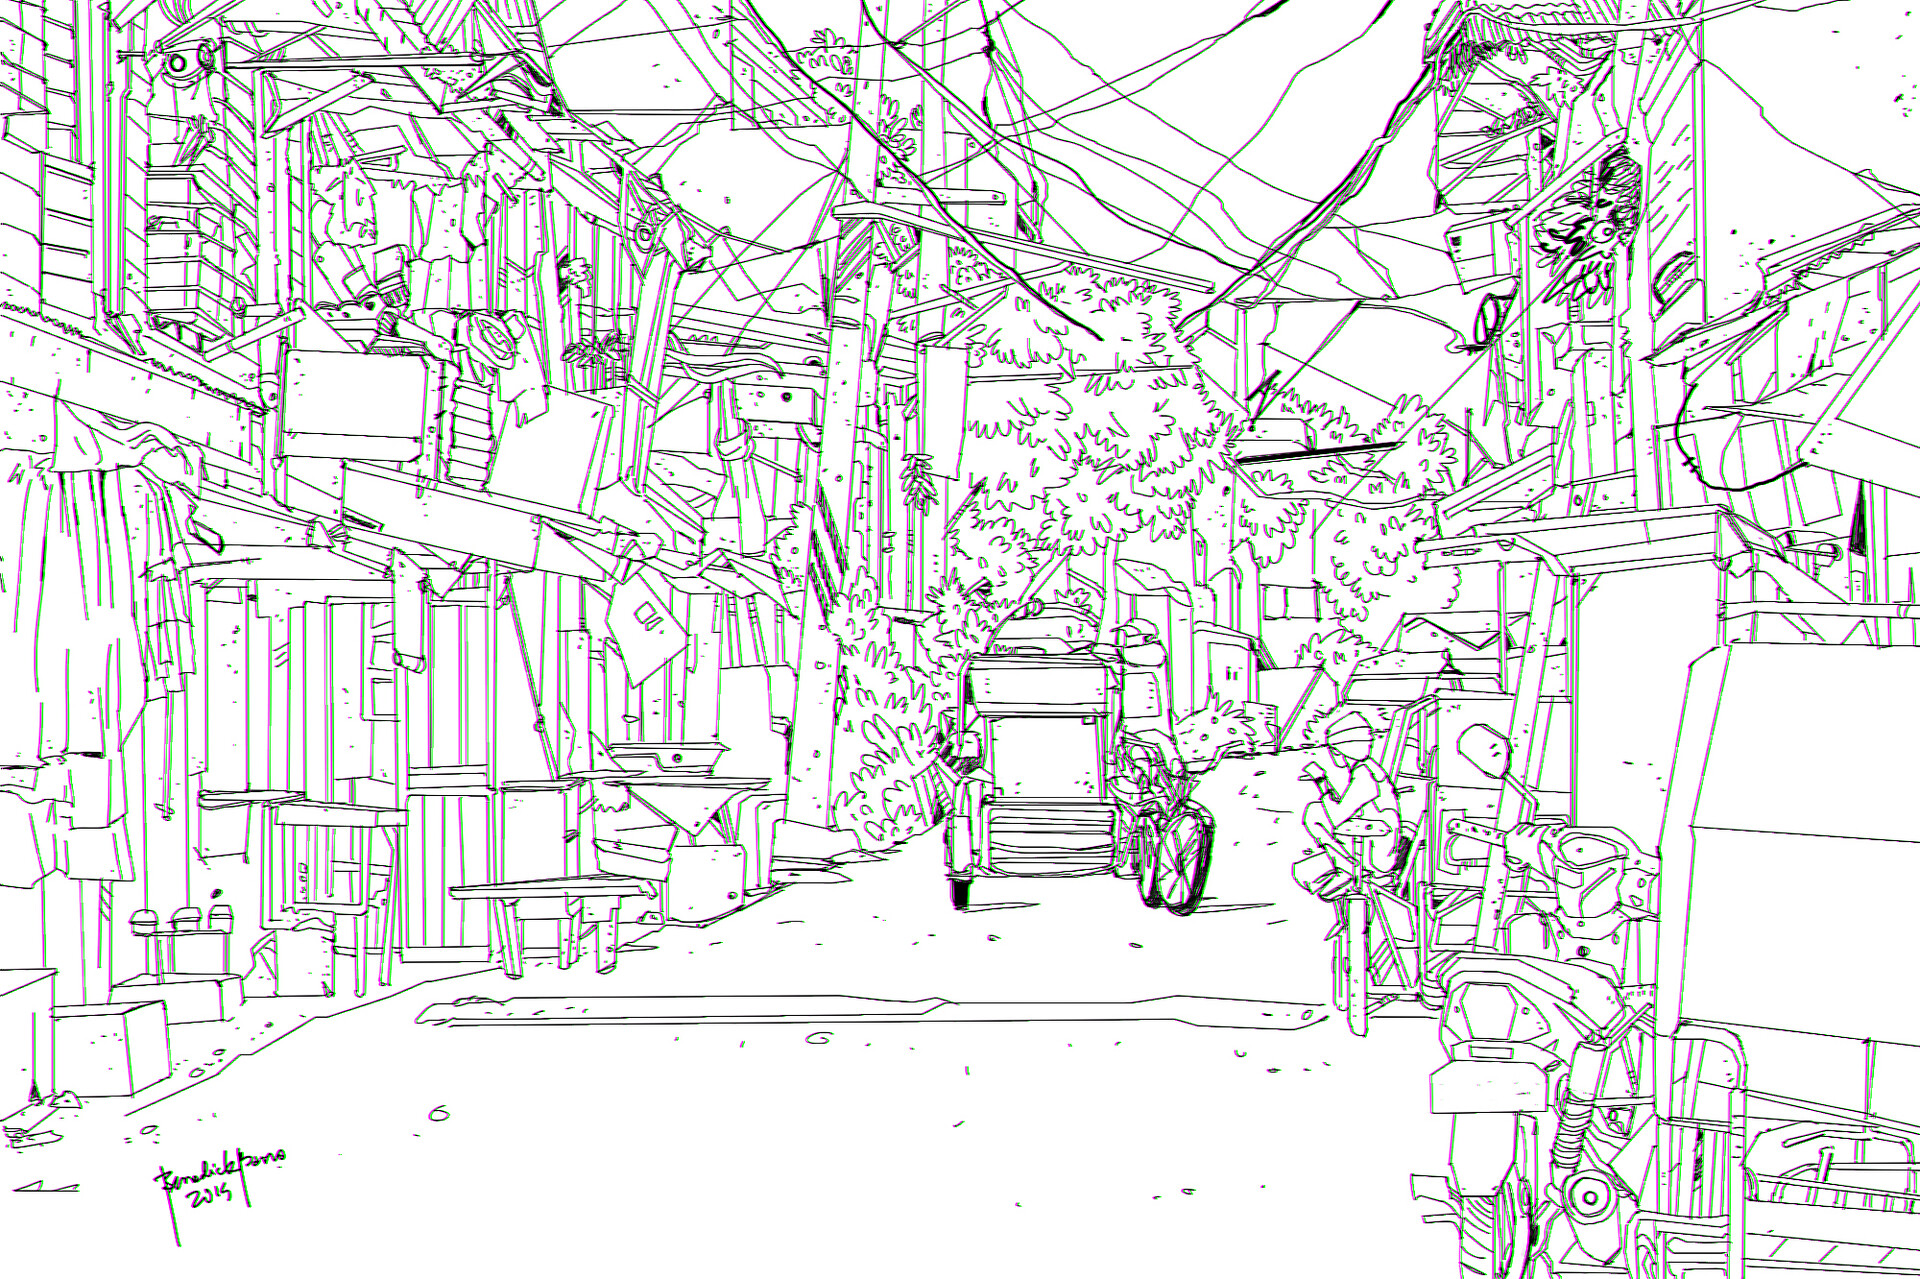 Street in the Philippines lineart study - ref used (image)